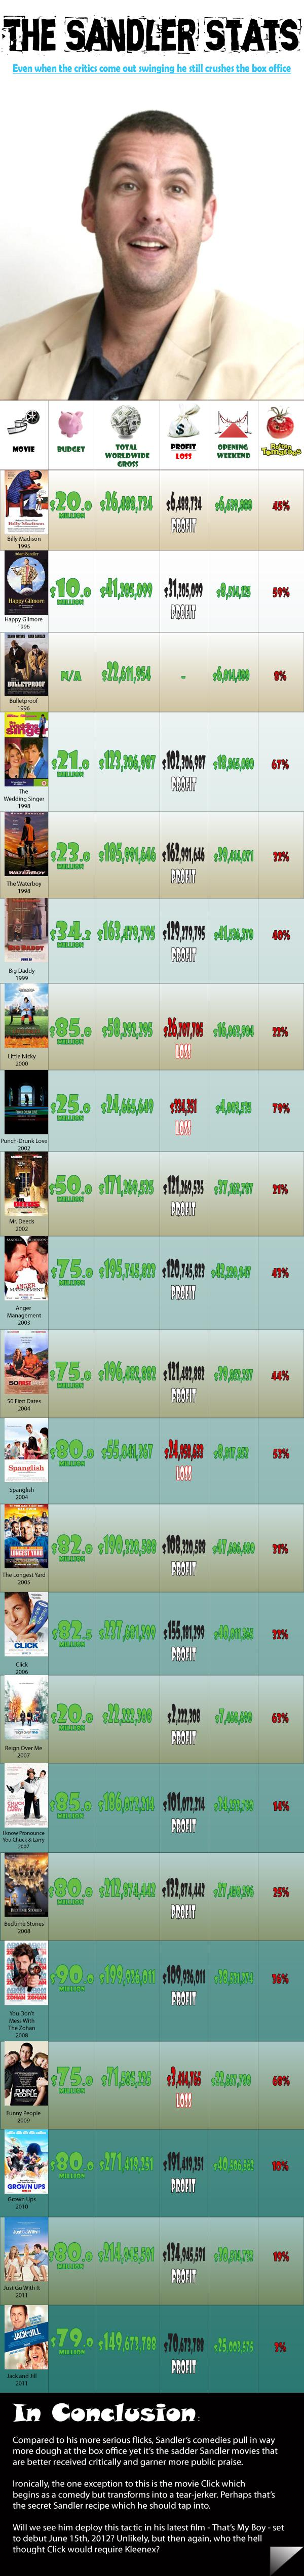 Adam Sandler Box Office Success